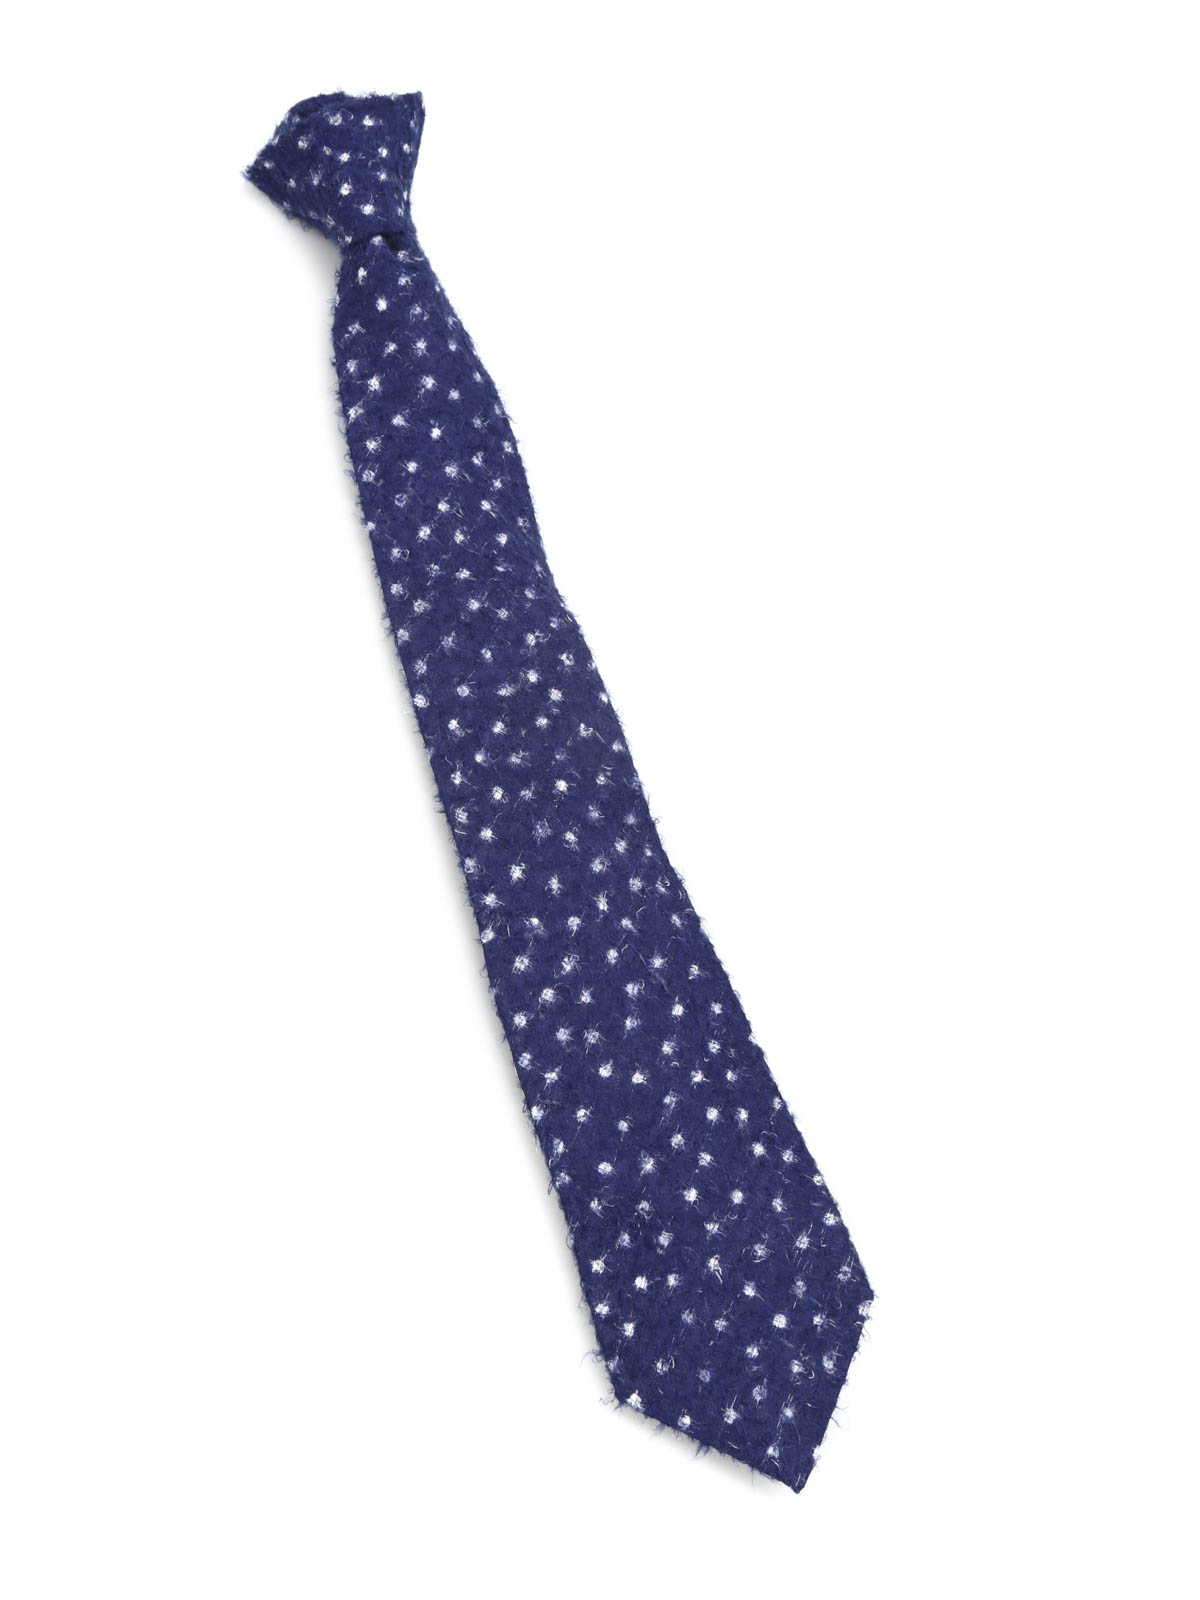 ACCESSORIES - Bow Ties Roda Cheap Sale Official Pay With Visa Online Cheap Authentic Clearance Enjoy mXcUw28Z